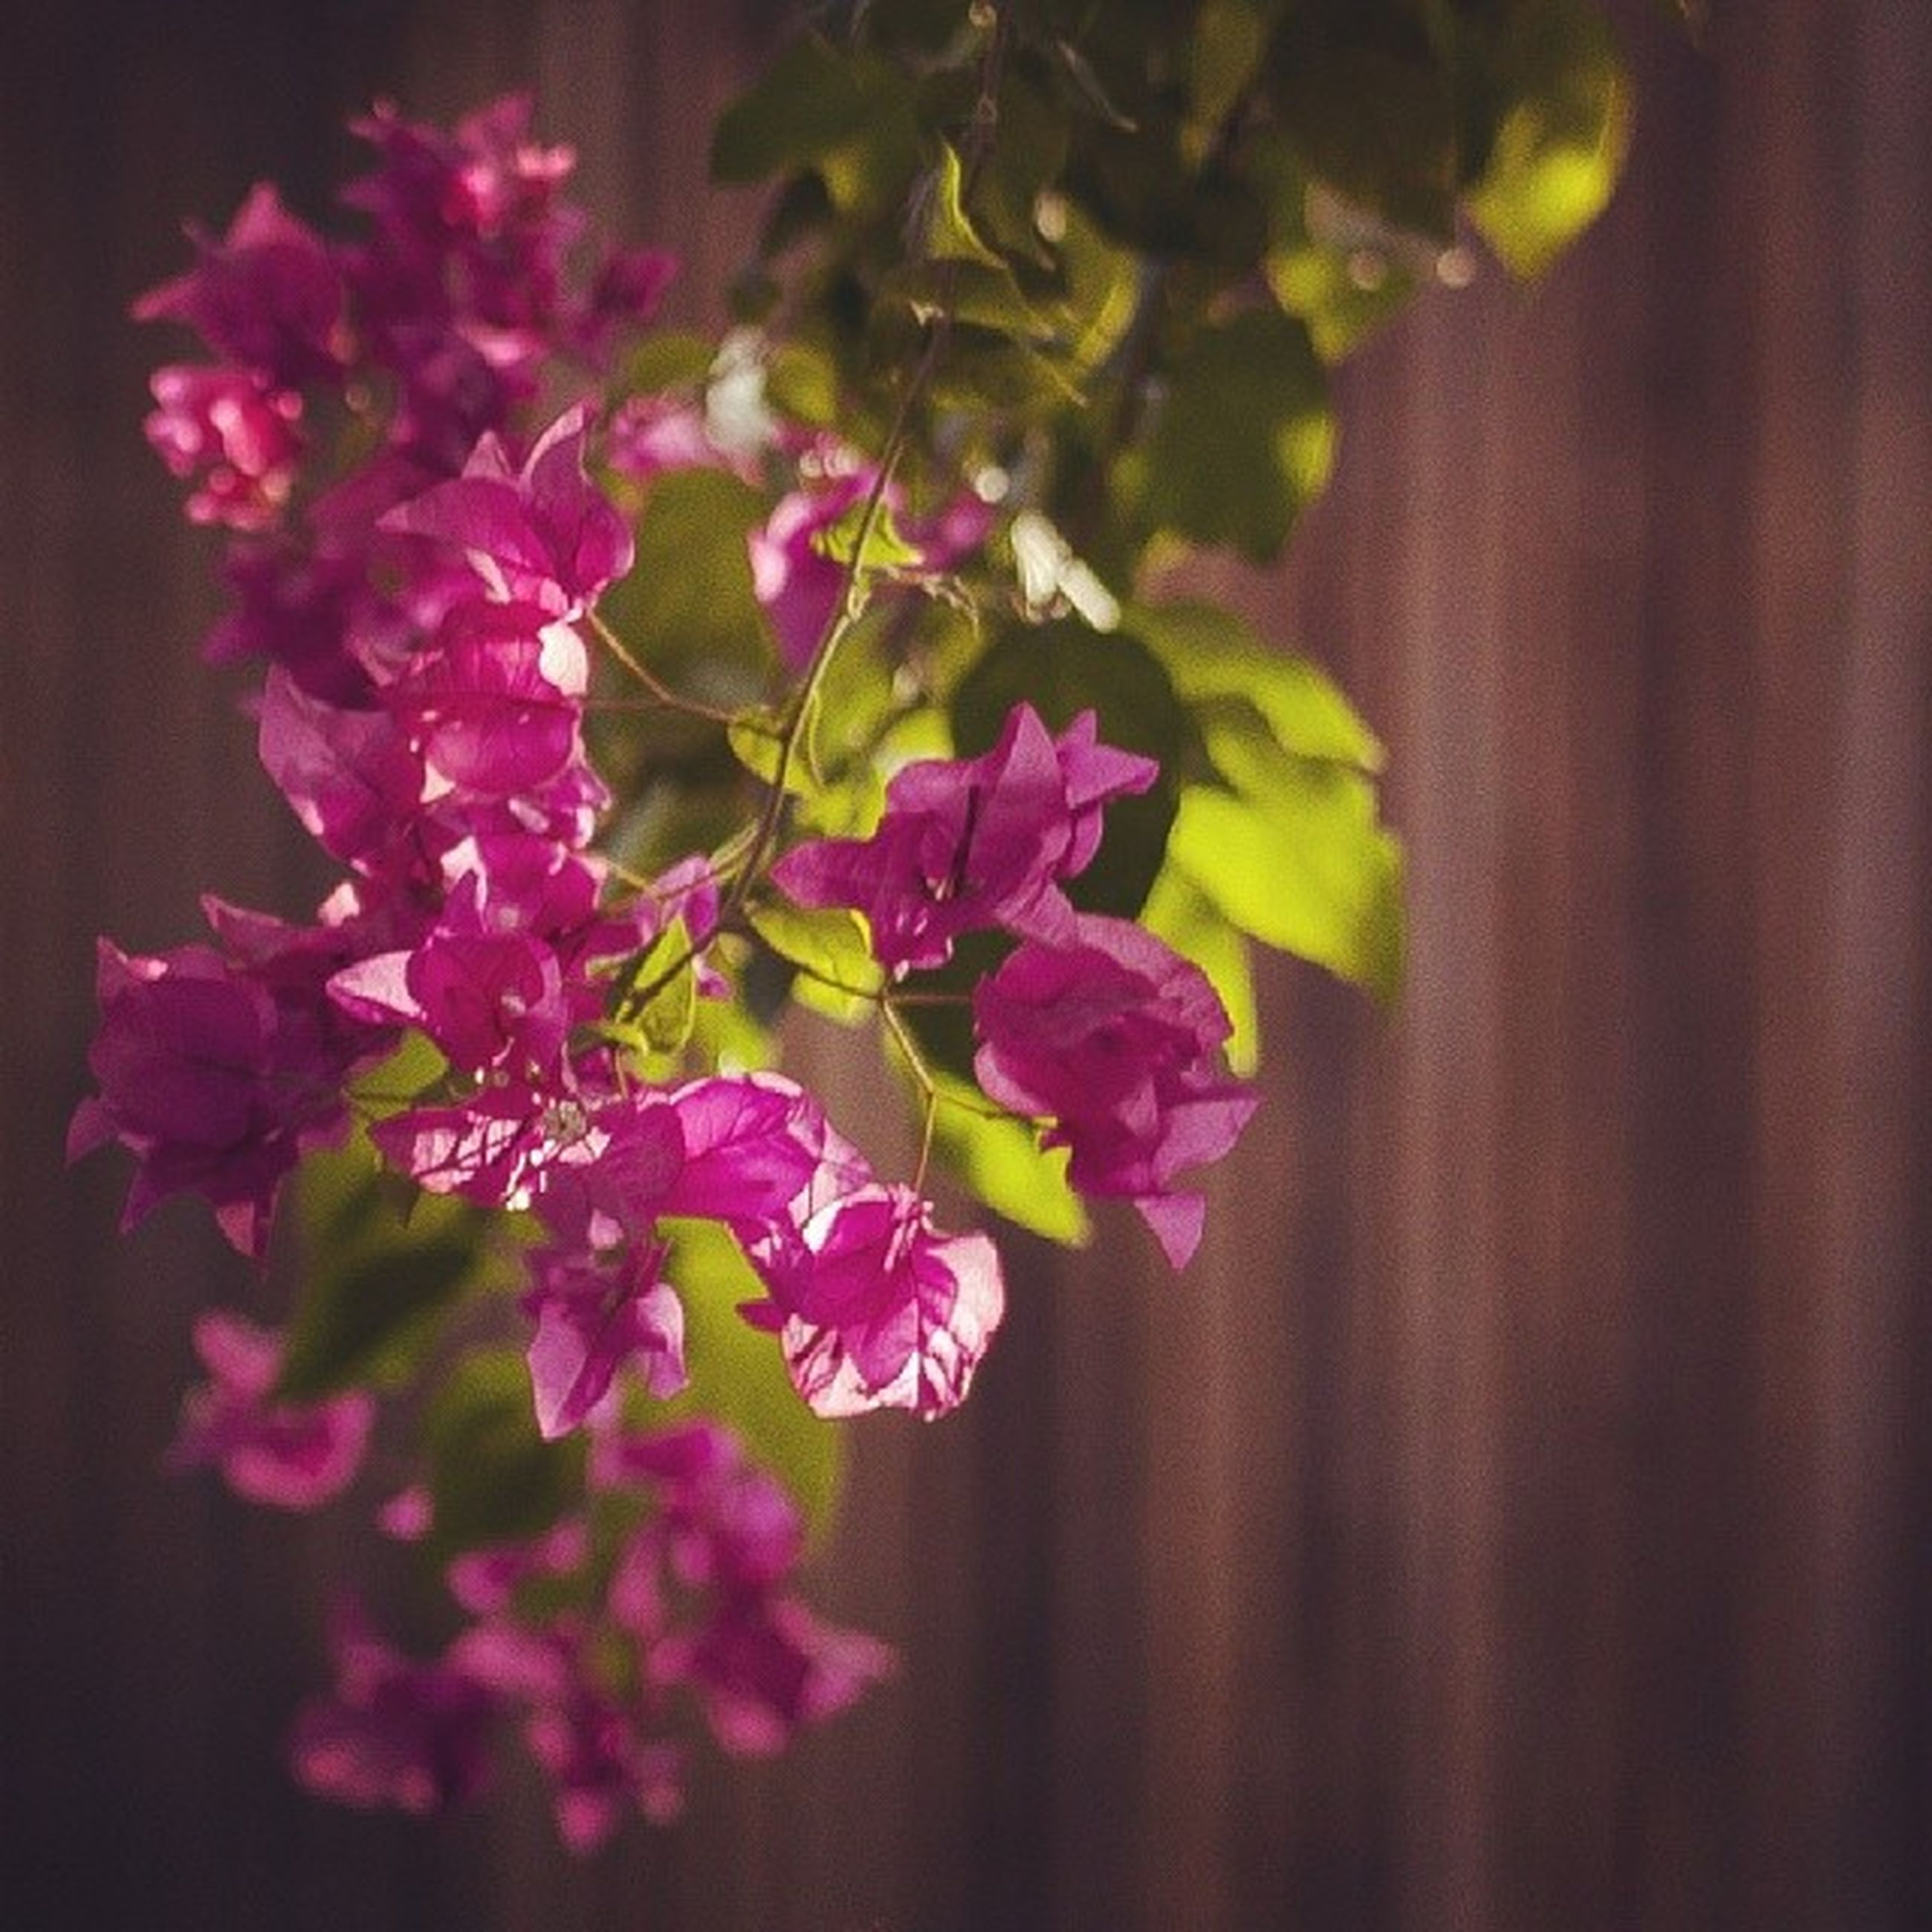 flower, petal, freshness, fragility, growth, beauty in nature, pink color, nature, focus on foreground, close-up, flower head, blooming, plant, in bloom, bunch of flowers, indoors, selective focus, no people, blossom, day